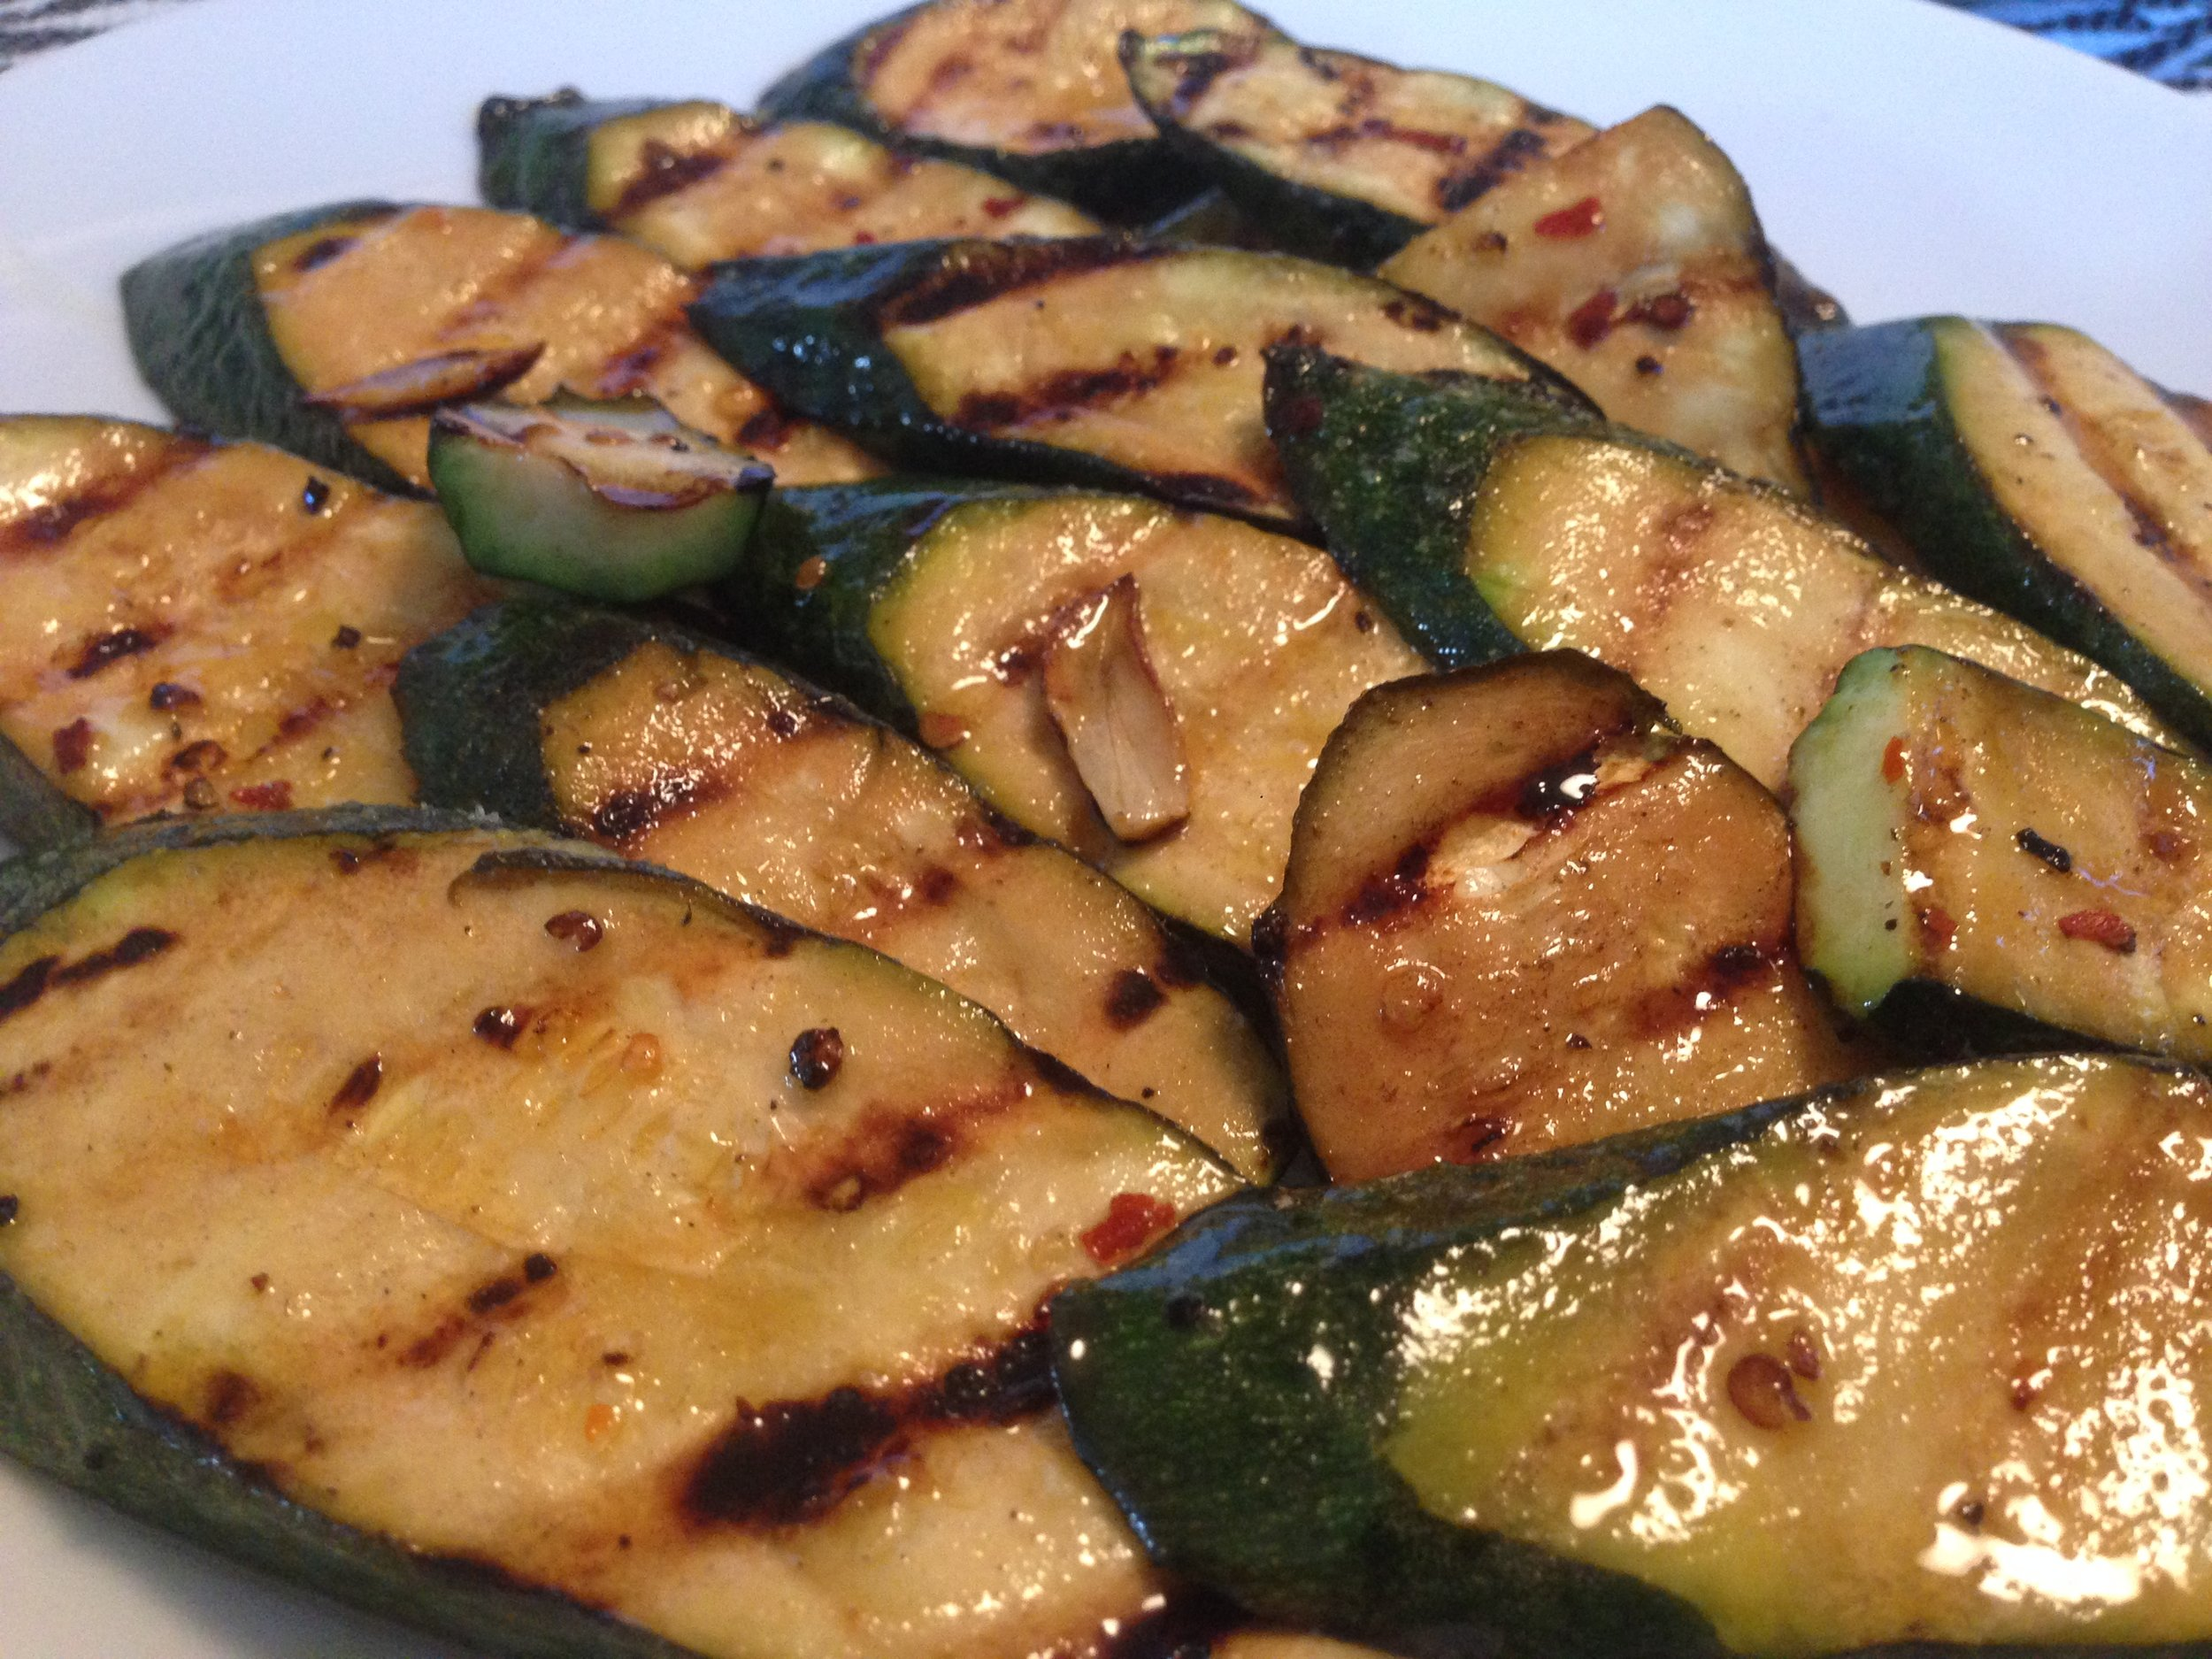 Zucchini grilled and ready to eat.